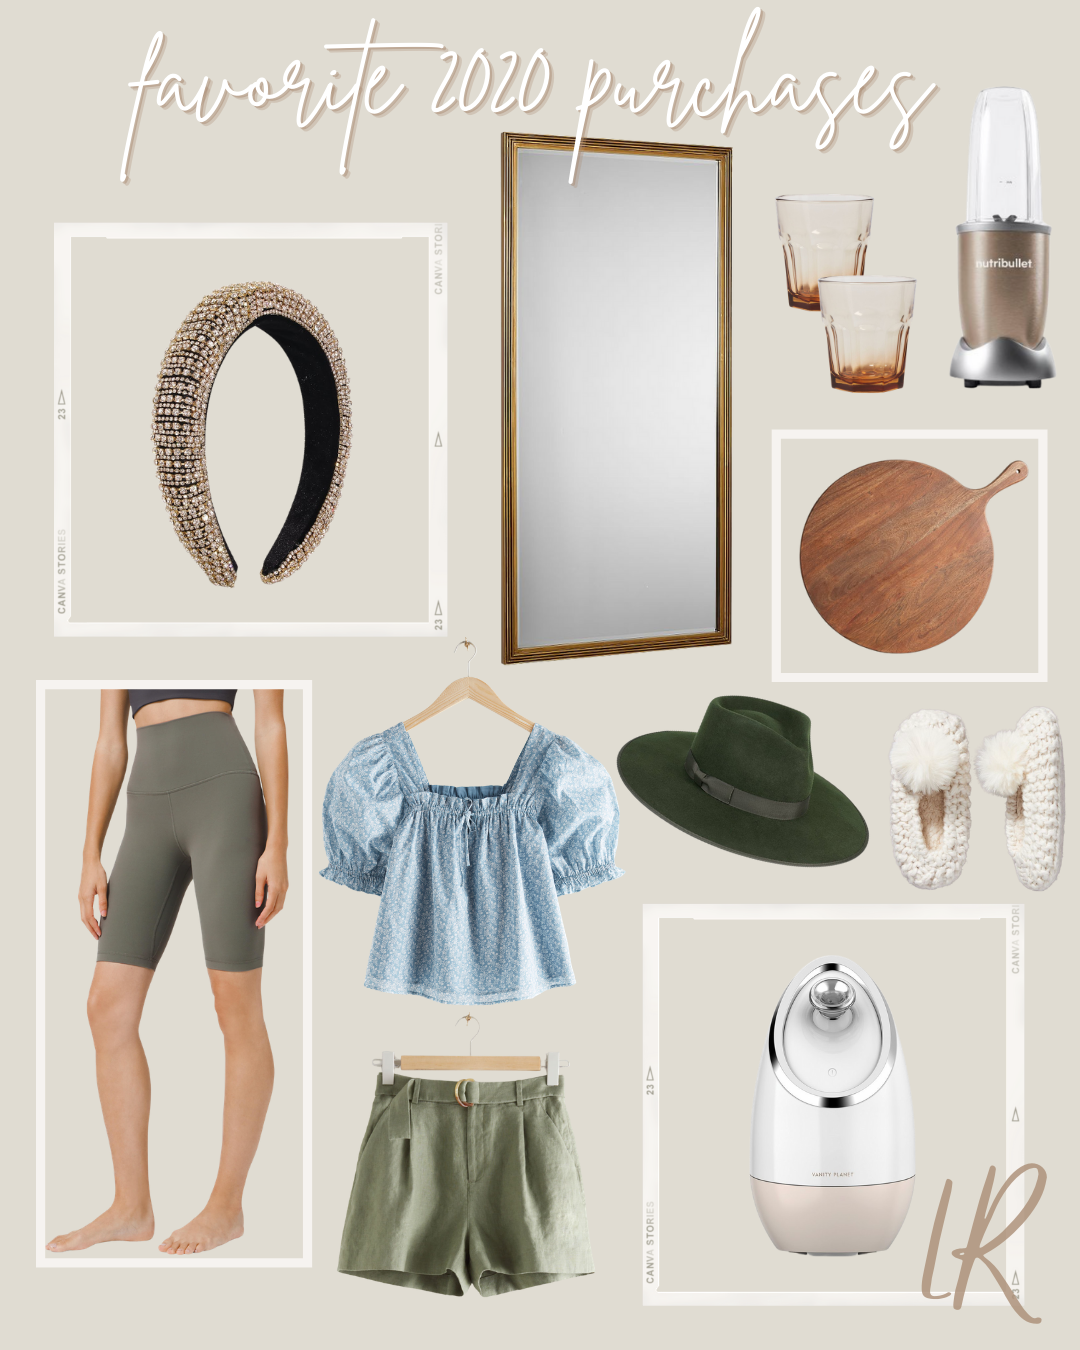 Favorite 2020 Purchases | Louella Reese